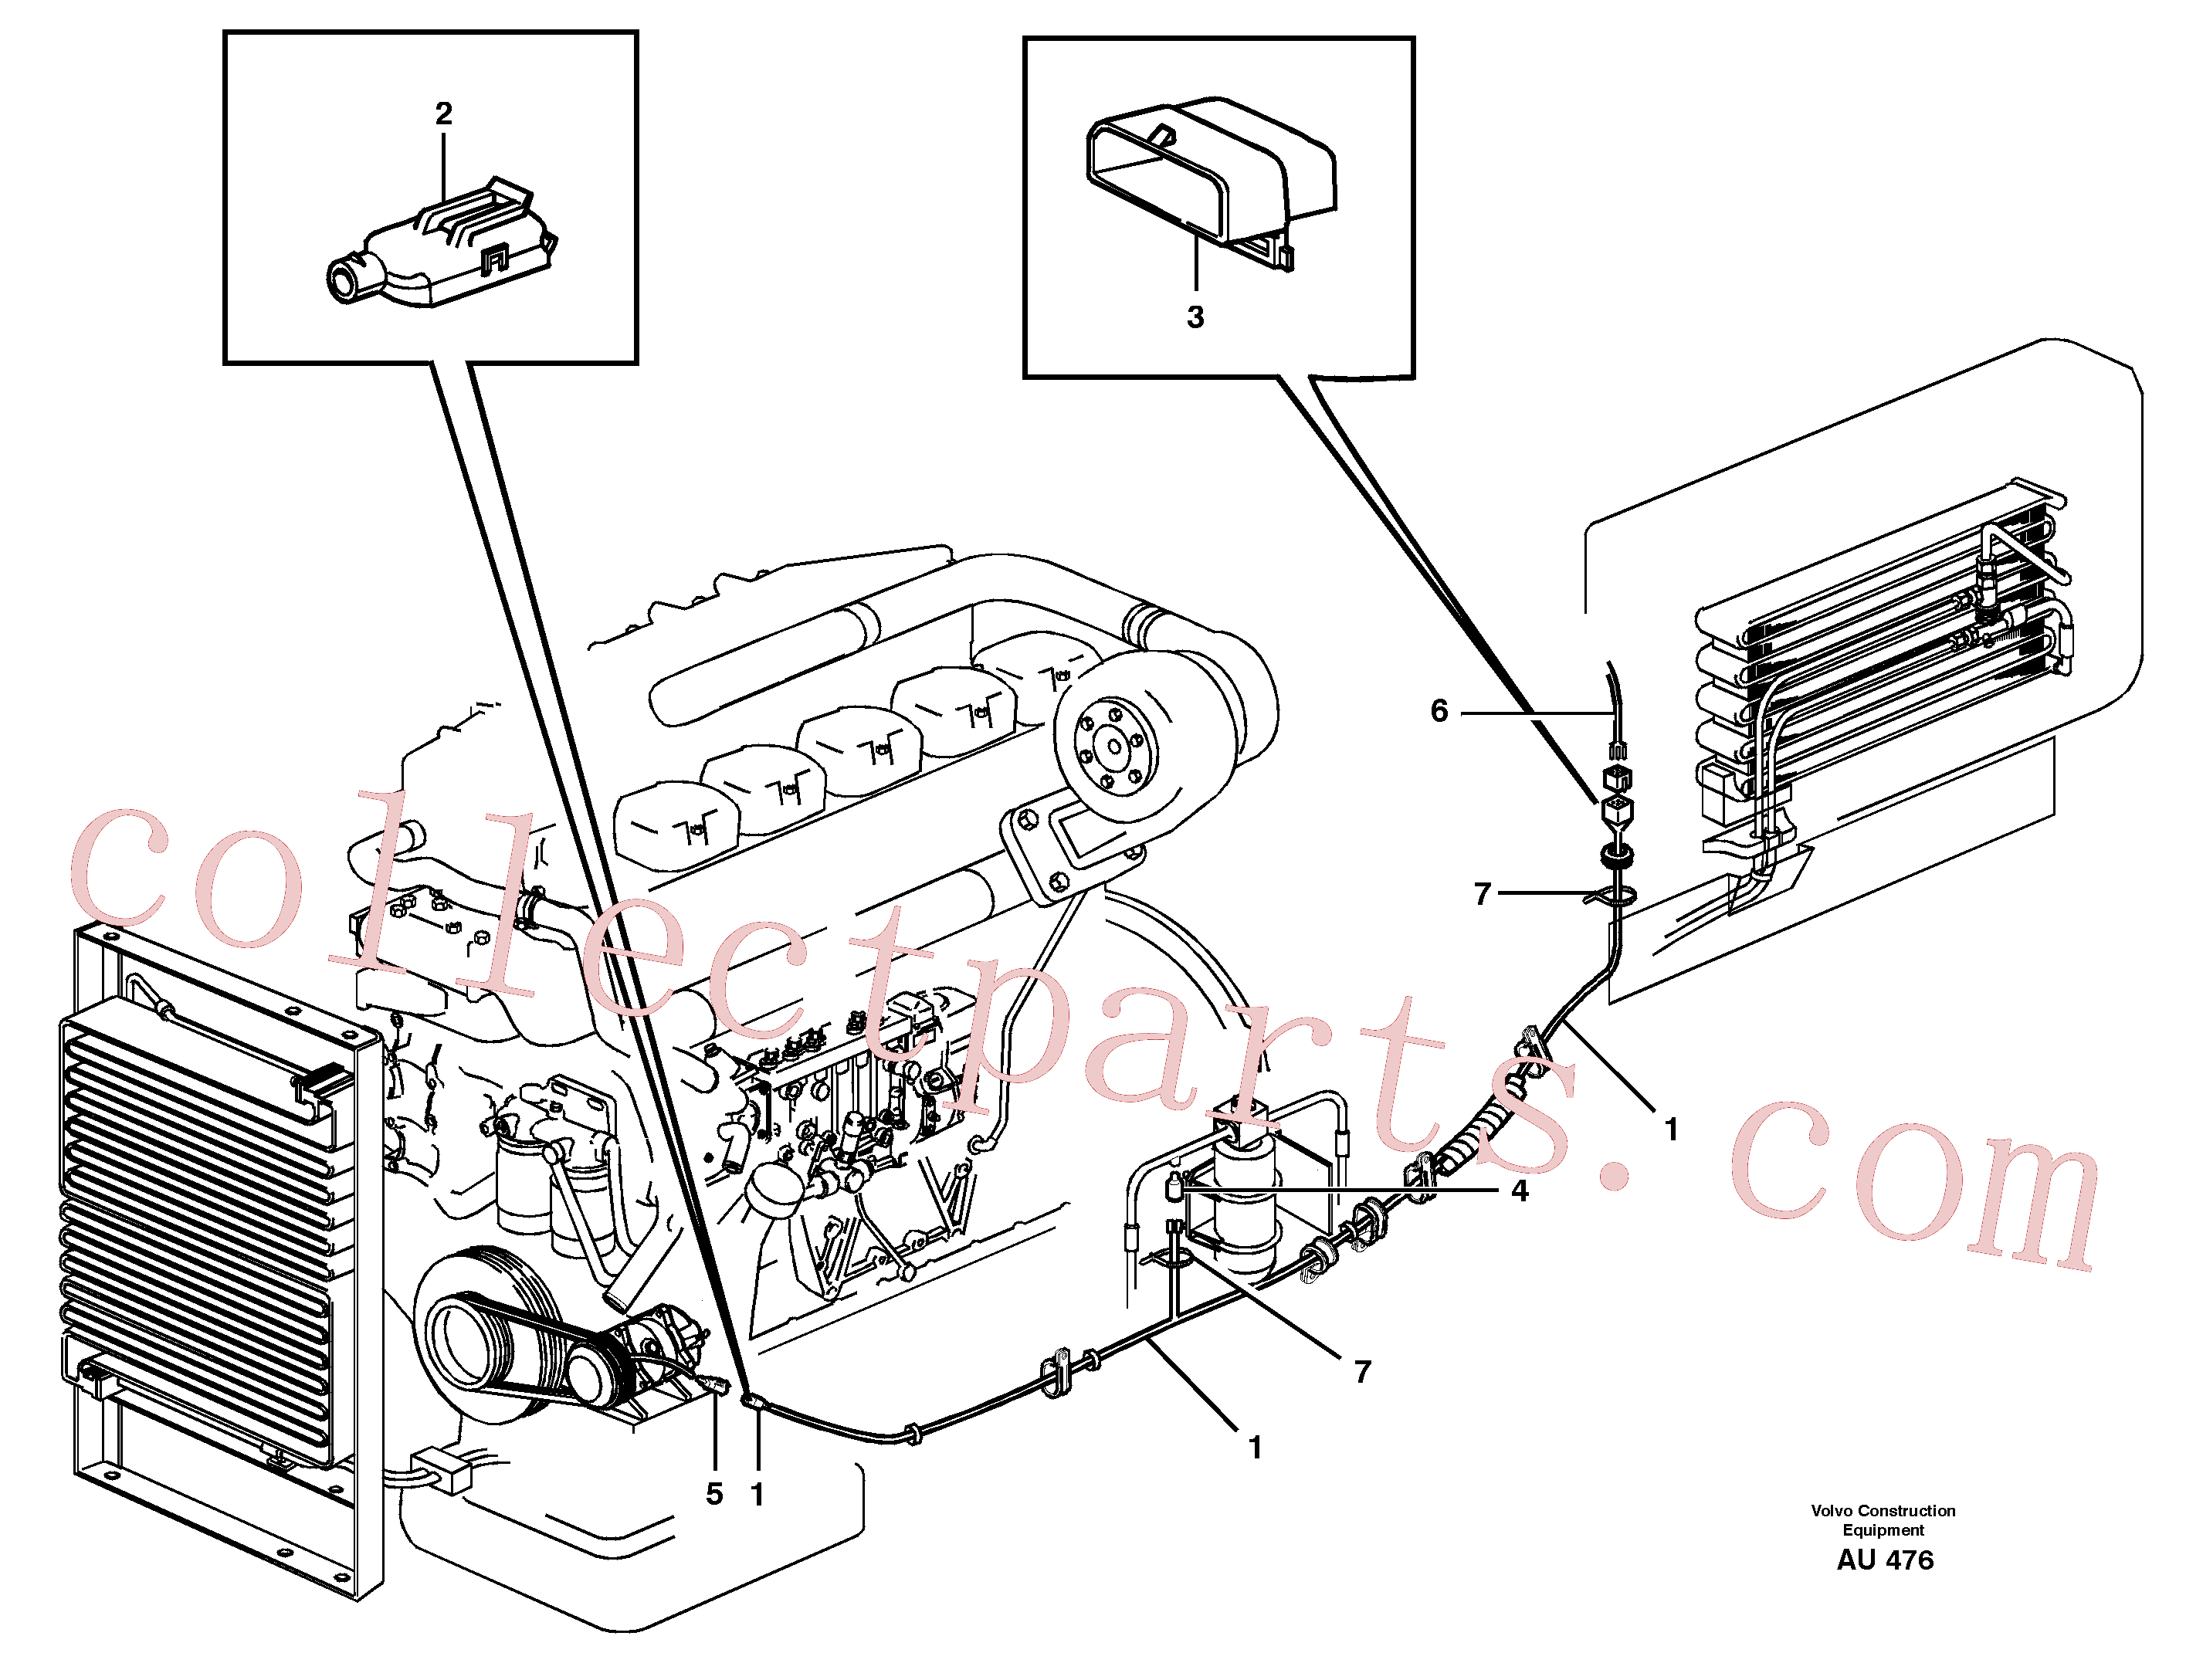 VOE1259829 for Volvo Cable harness, air conditioning.(AU476 assembly)